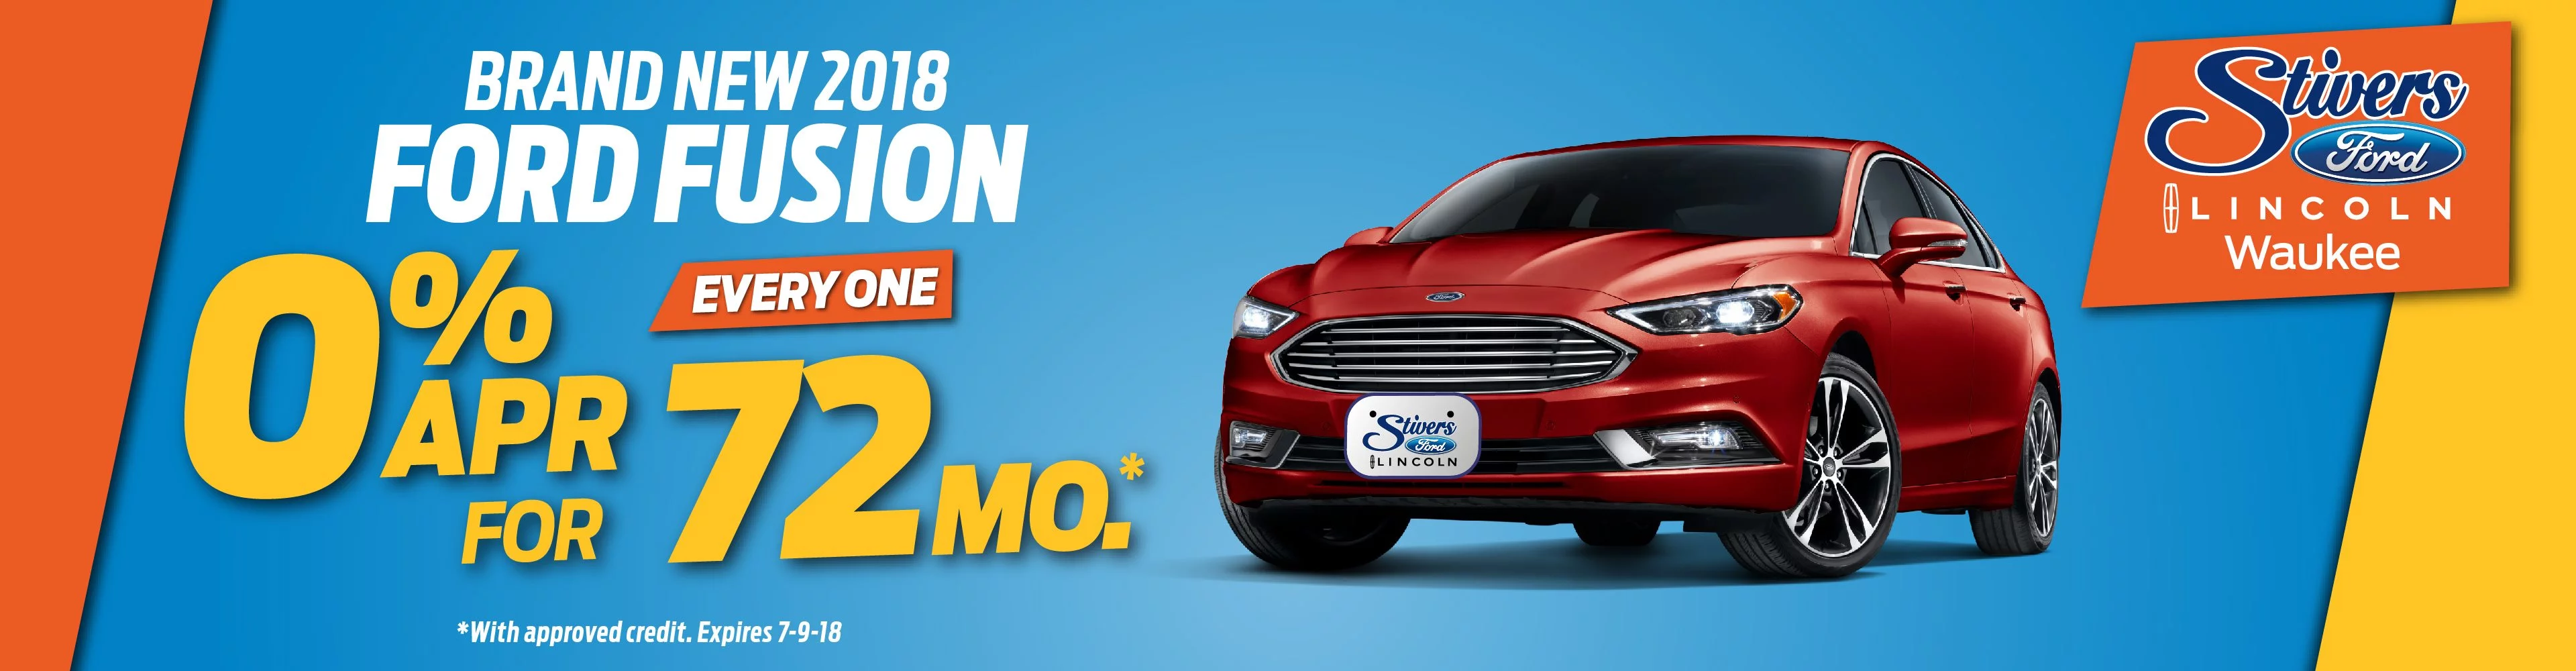 Ford Fusion Banner